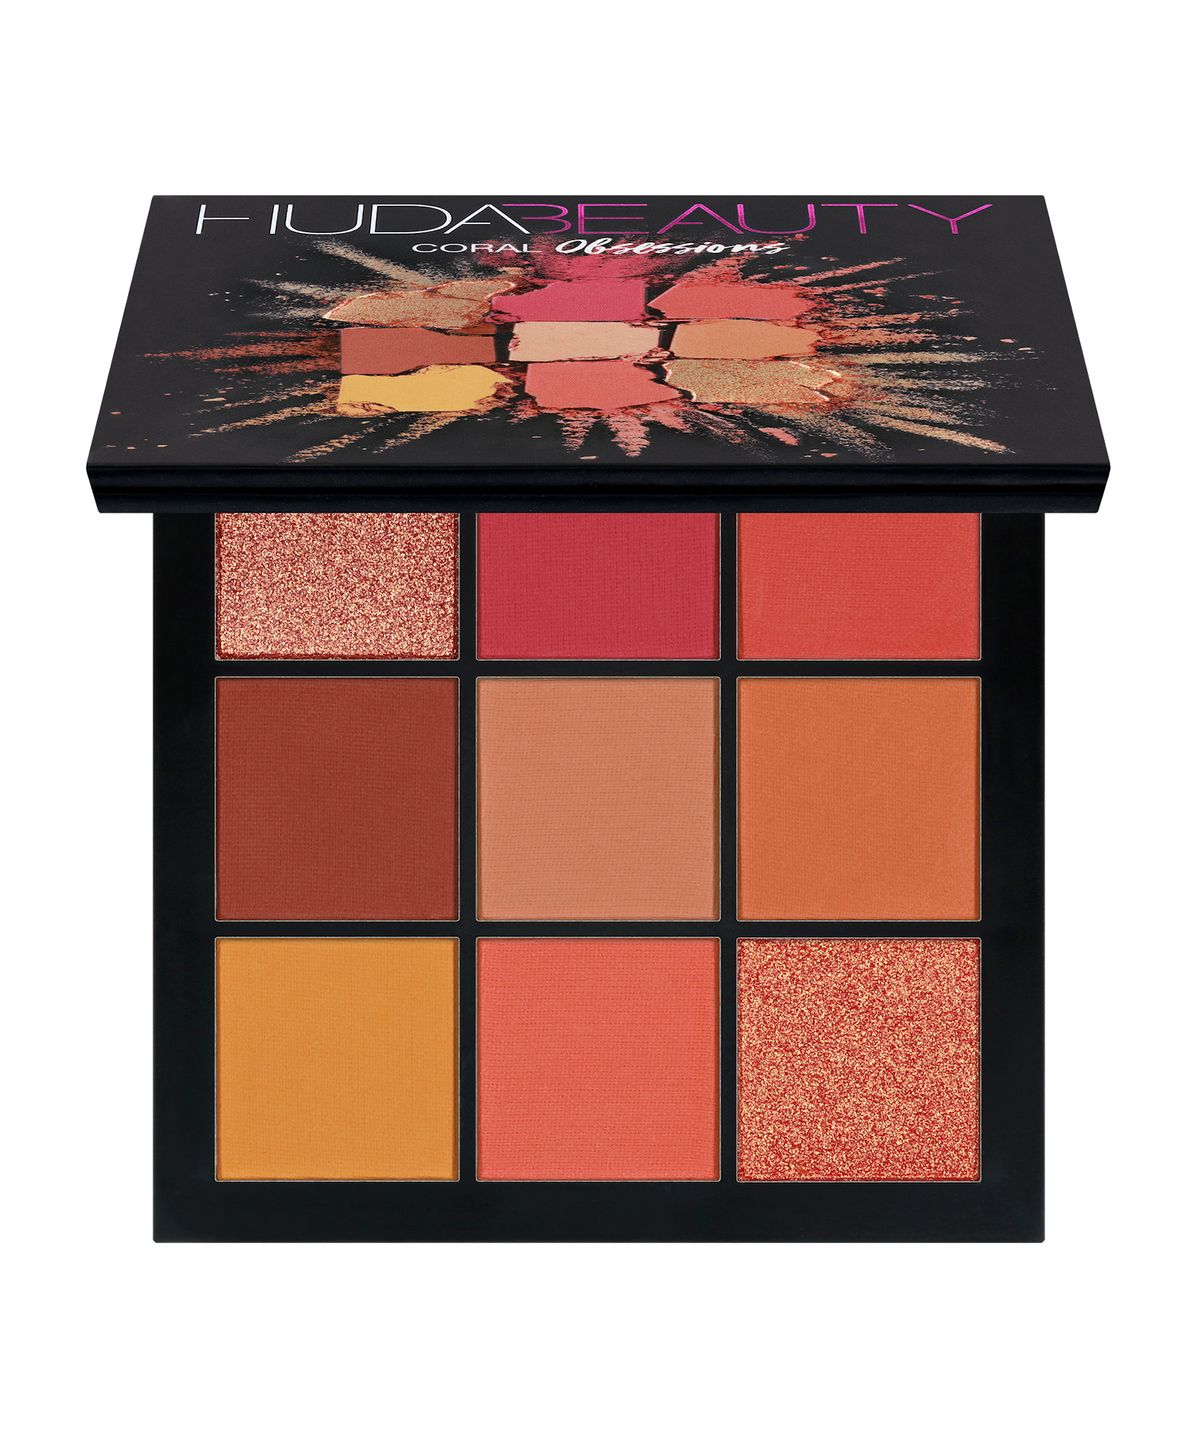 HUDA BEAUTY Coral Obsessions Palette 10g